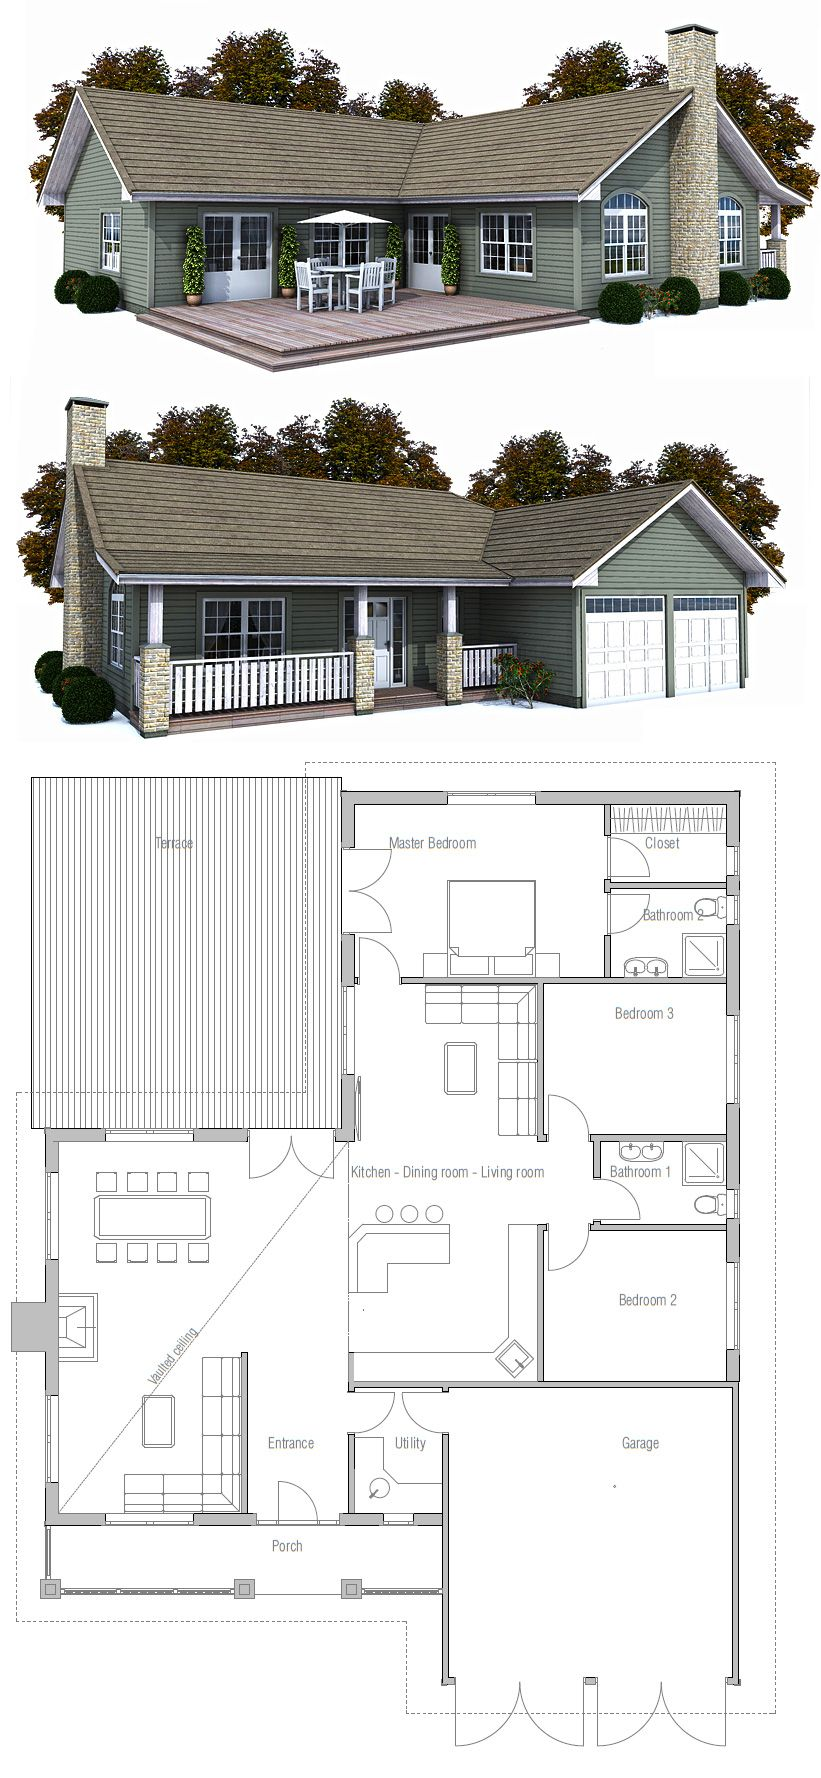 Small house plan small house plans pinterest for 2000 sq ft prefab homes